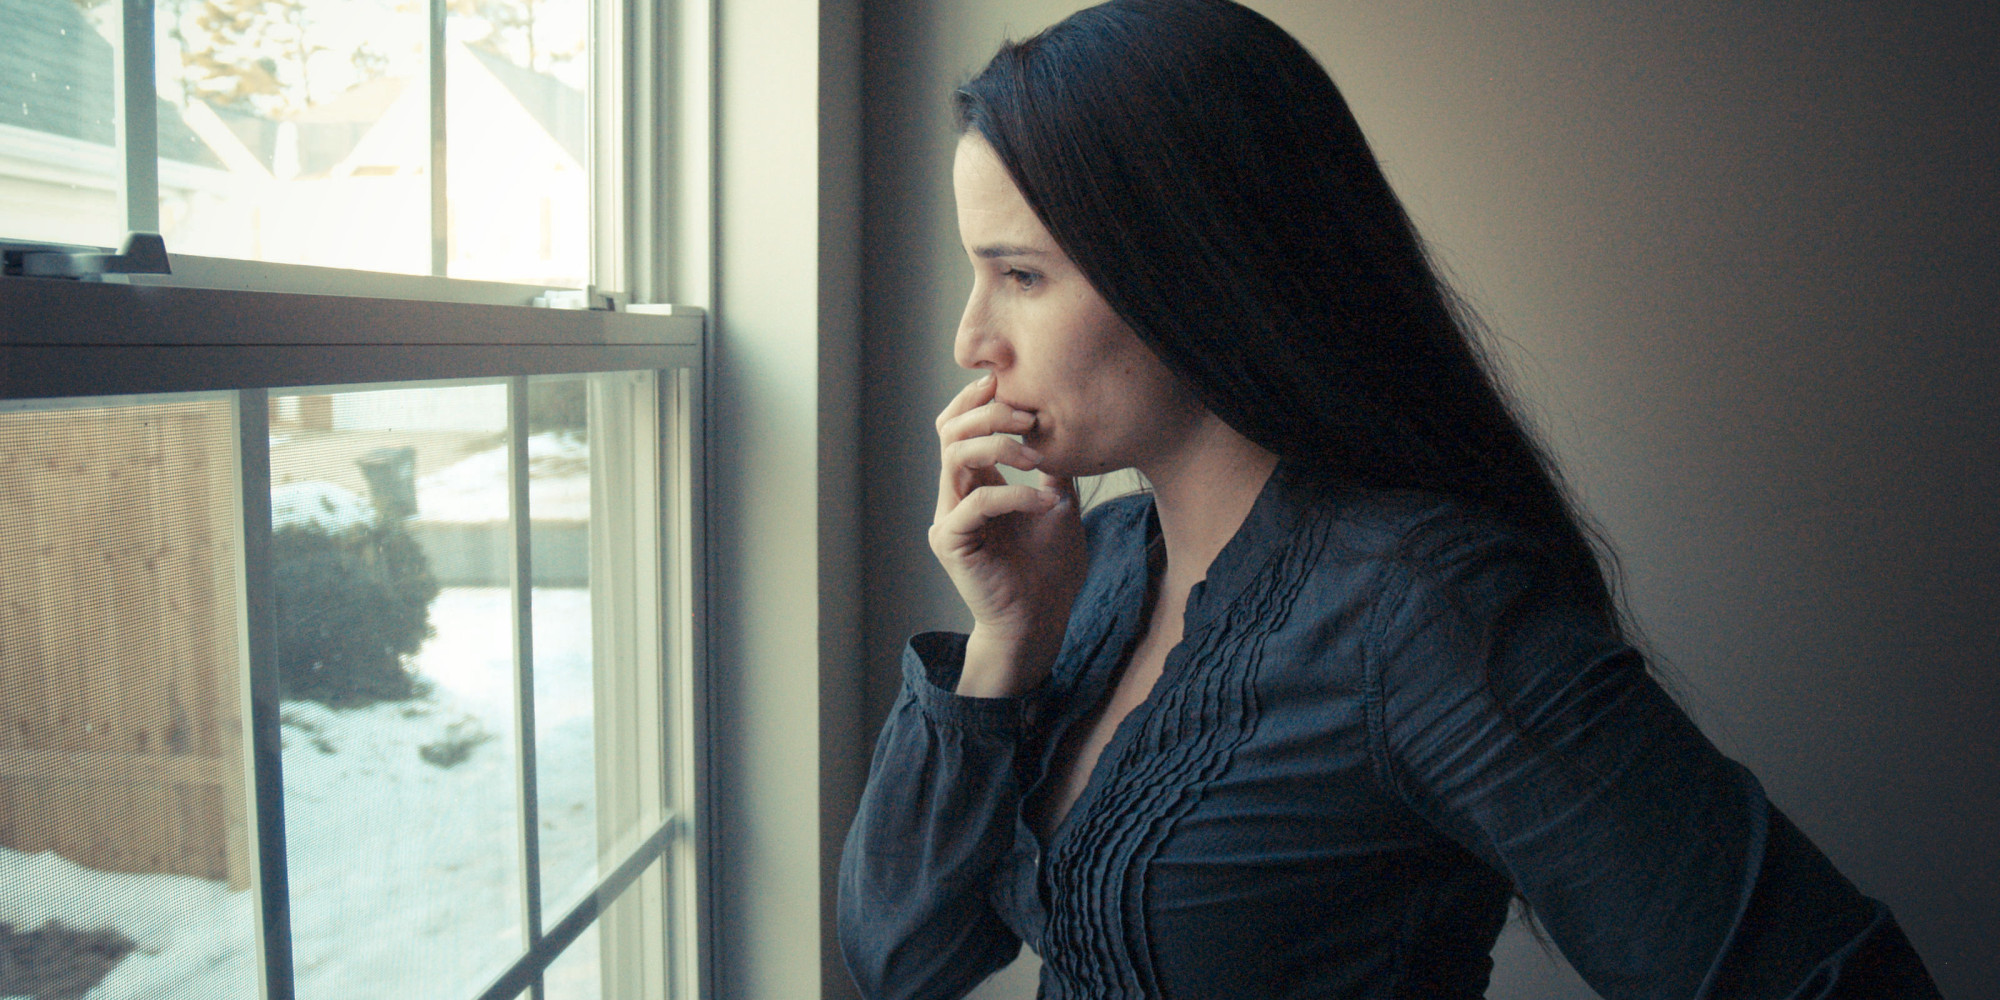 7 Ways Women And Men Experience Depression Differently